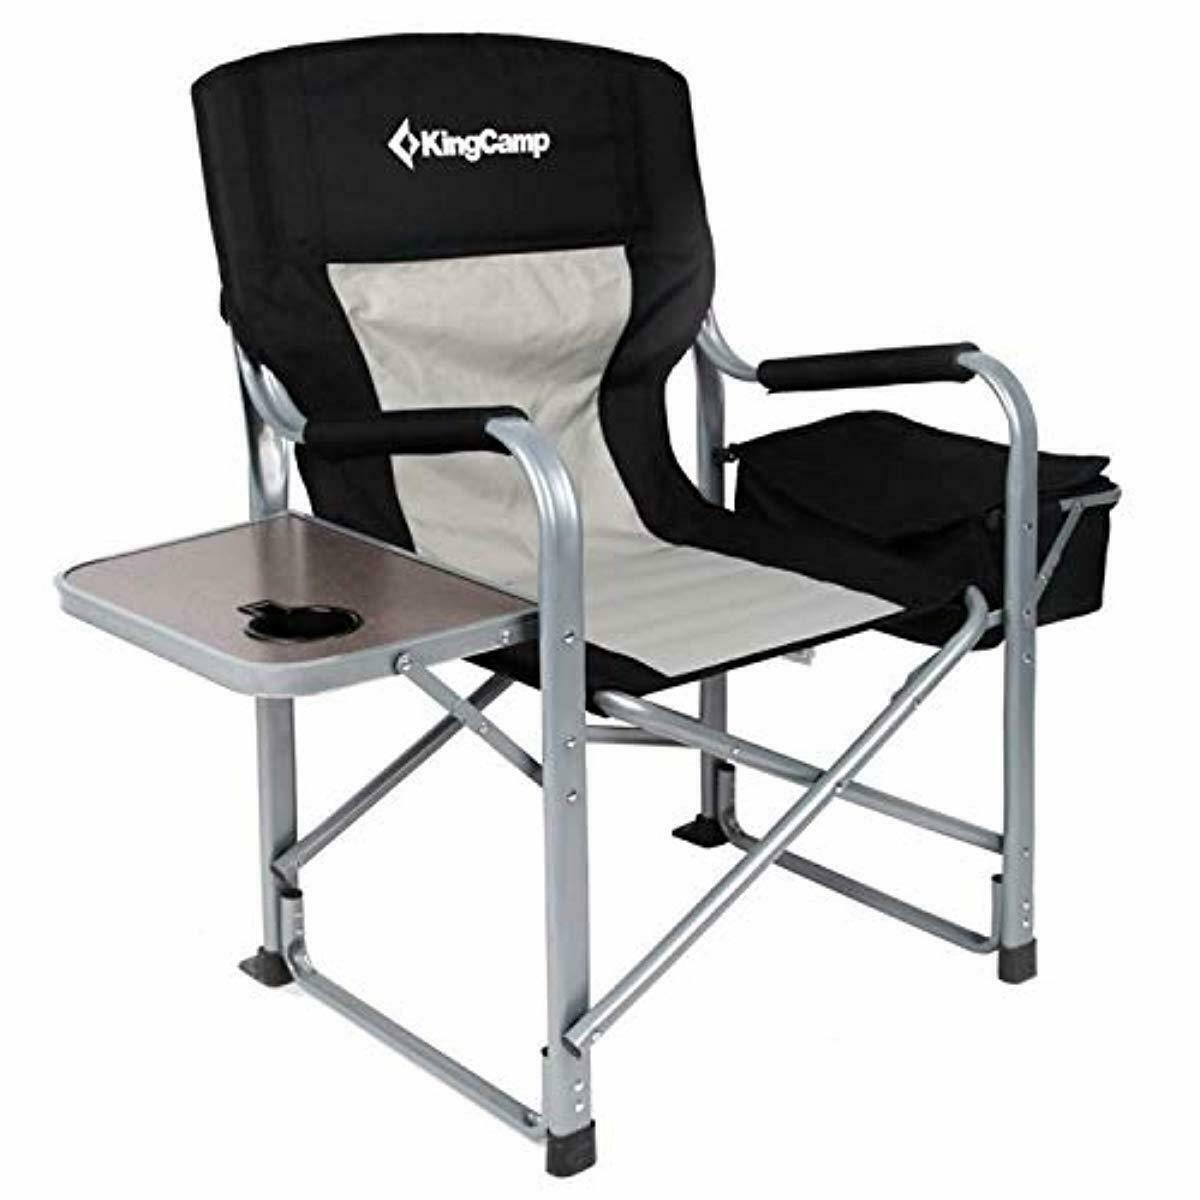 Best KingCamp Heavy Duty Steel Camping Folding Director Chair with Cooler Bag